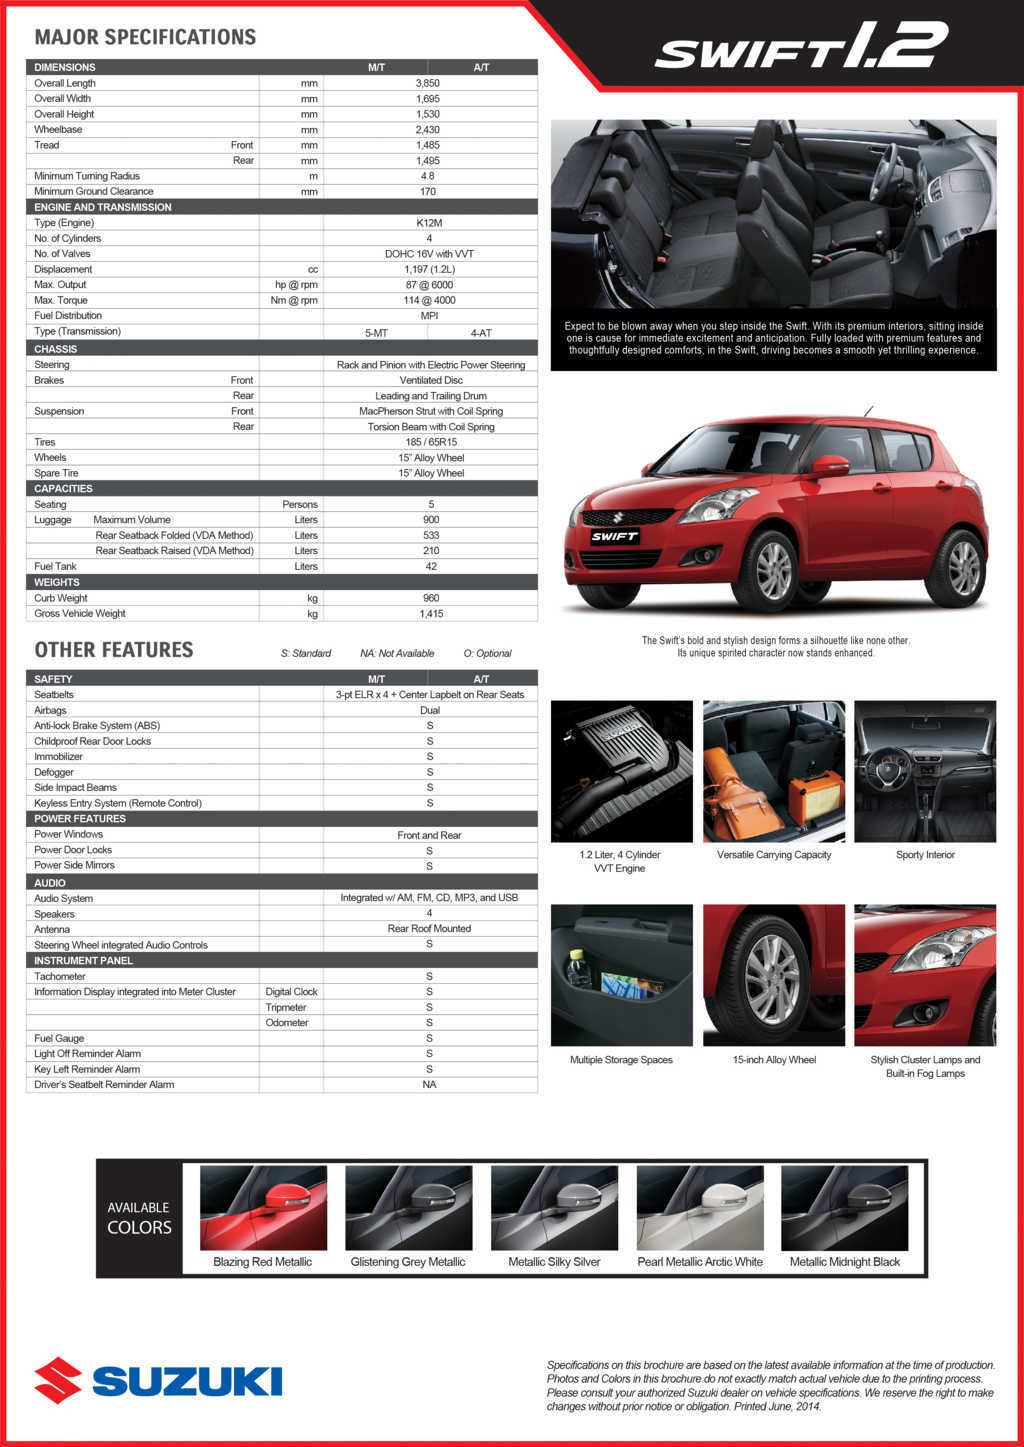 Suzuki Swift 1.2: Philippine Price, Specs and Availability